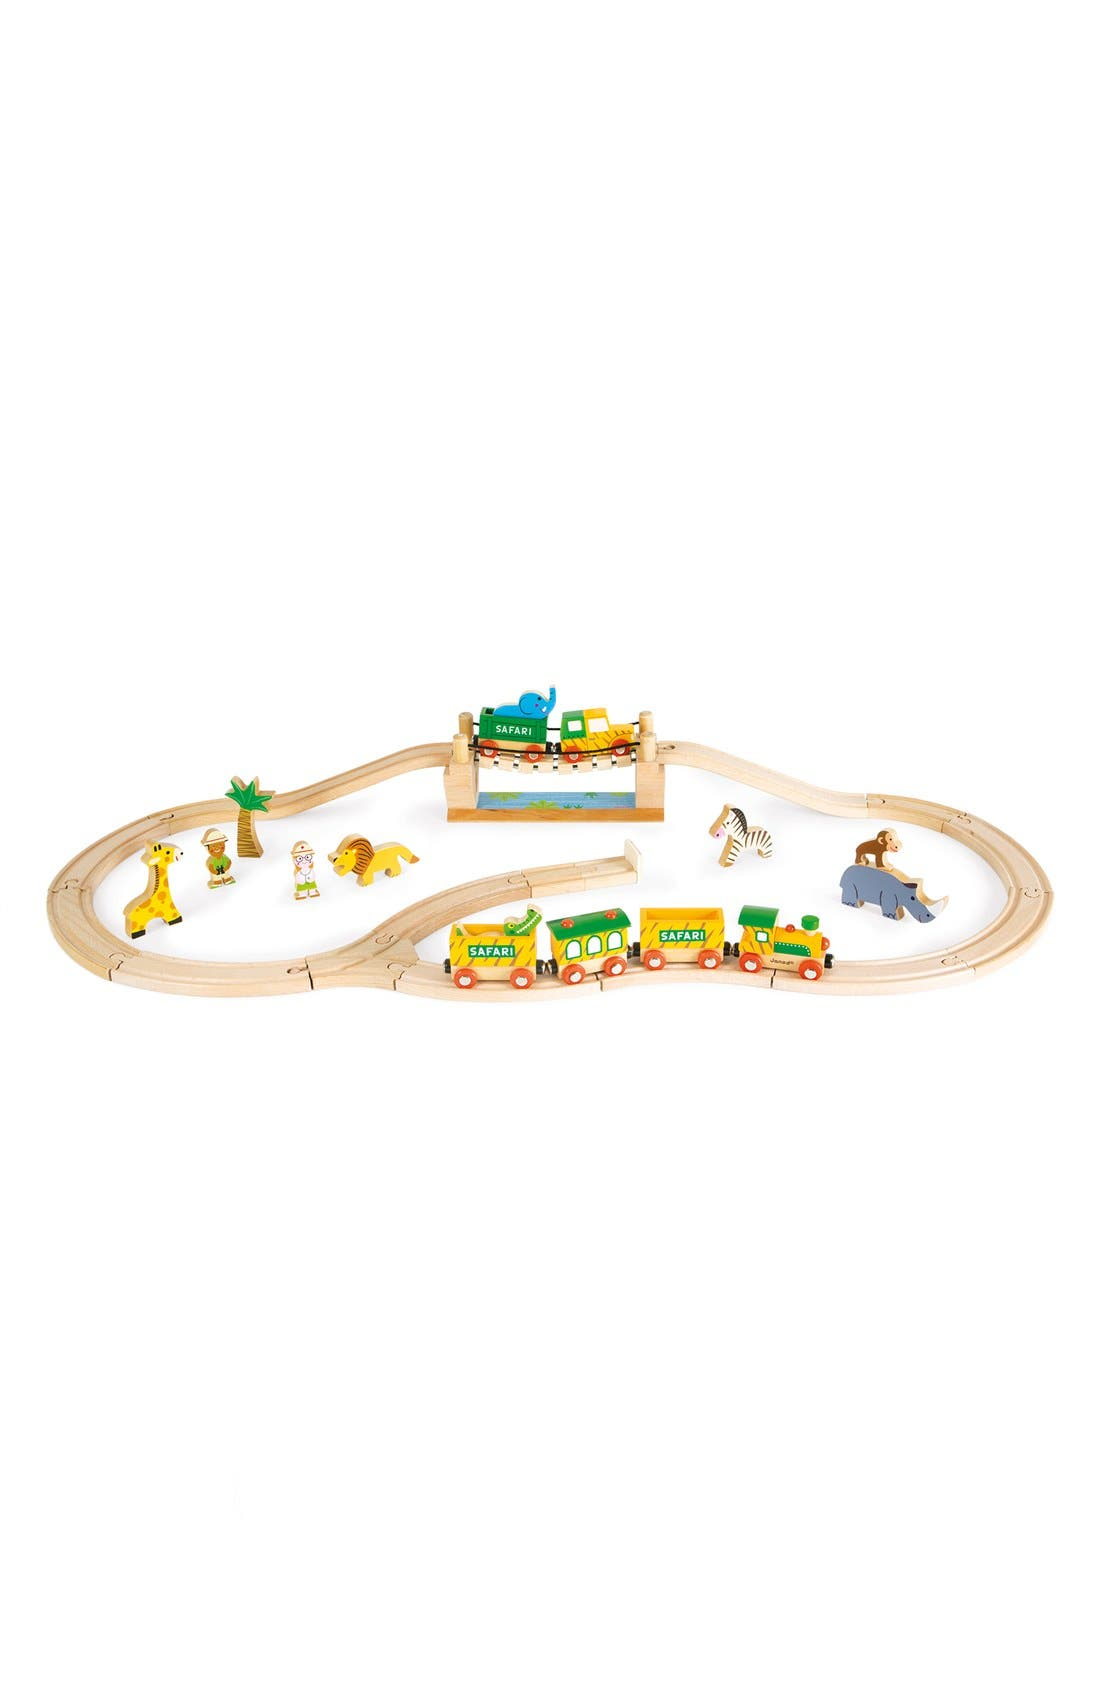 'Story Express - Safari' Train Set,                             Main thumbnail 1, color,                             Red